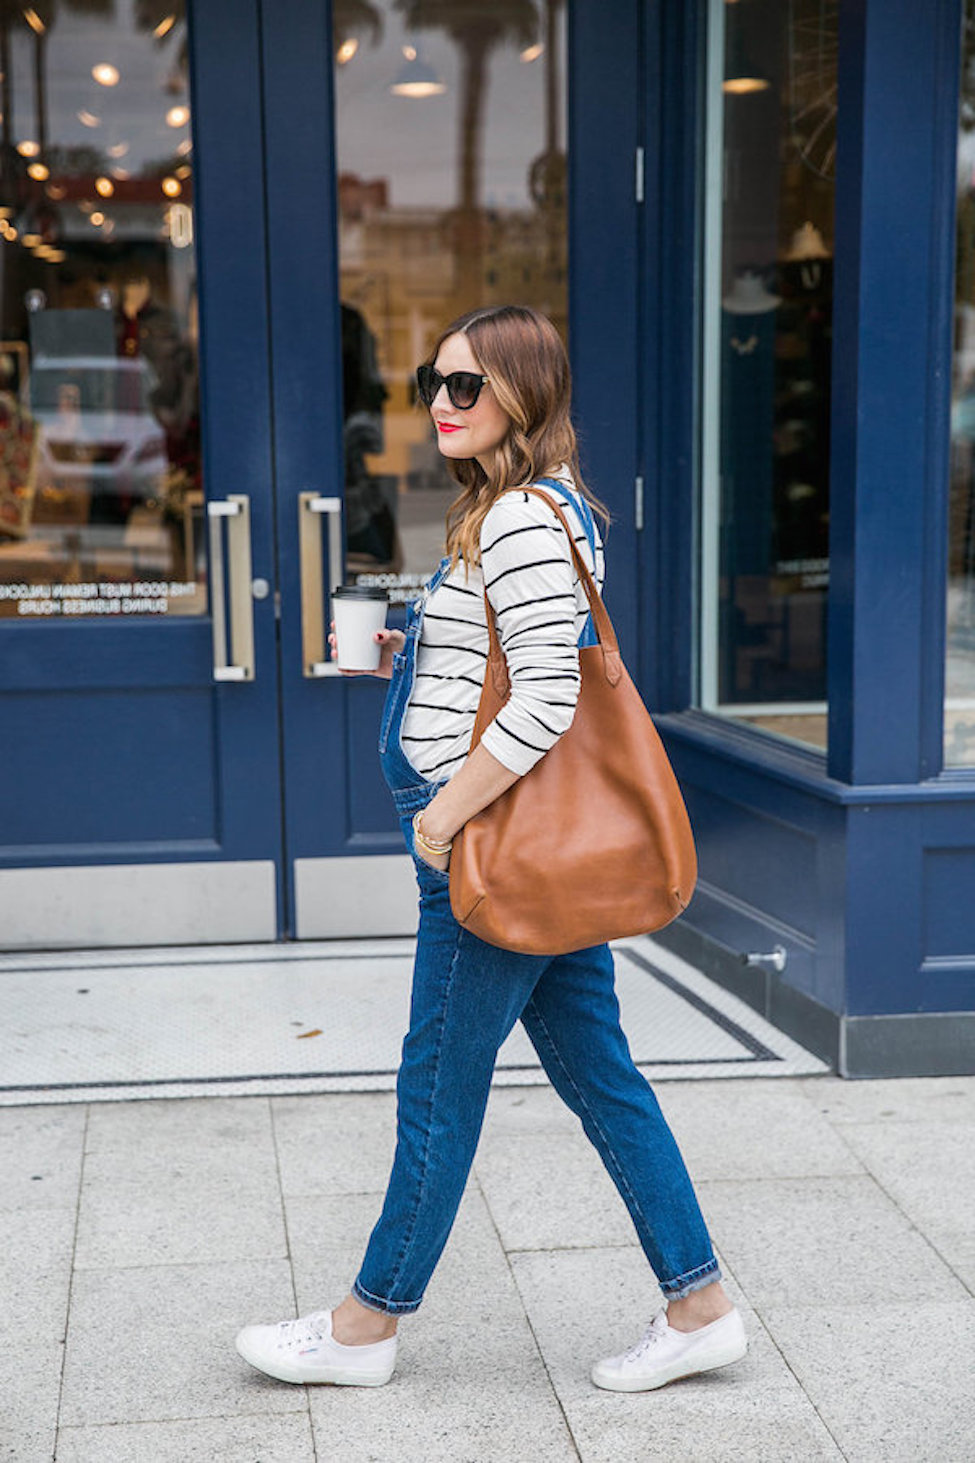 How To Dress The Bump Advice From 5 Stylish Mamas Carrie Colbert